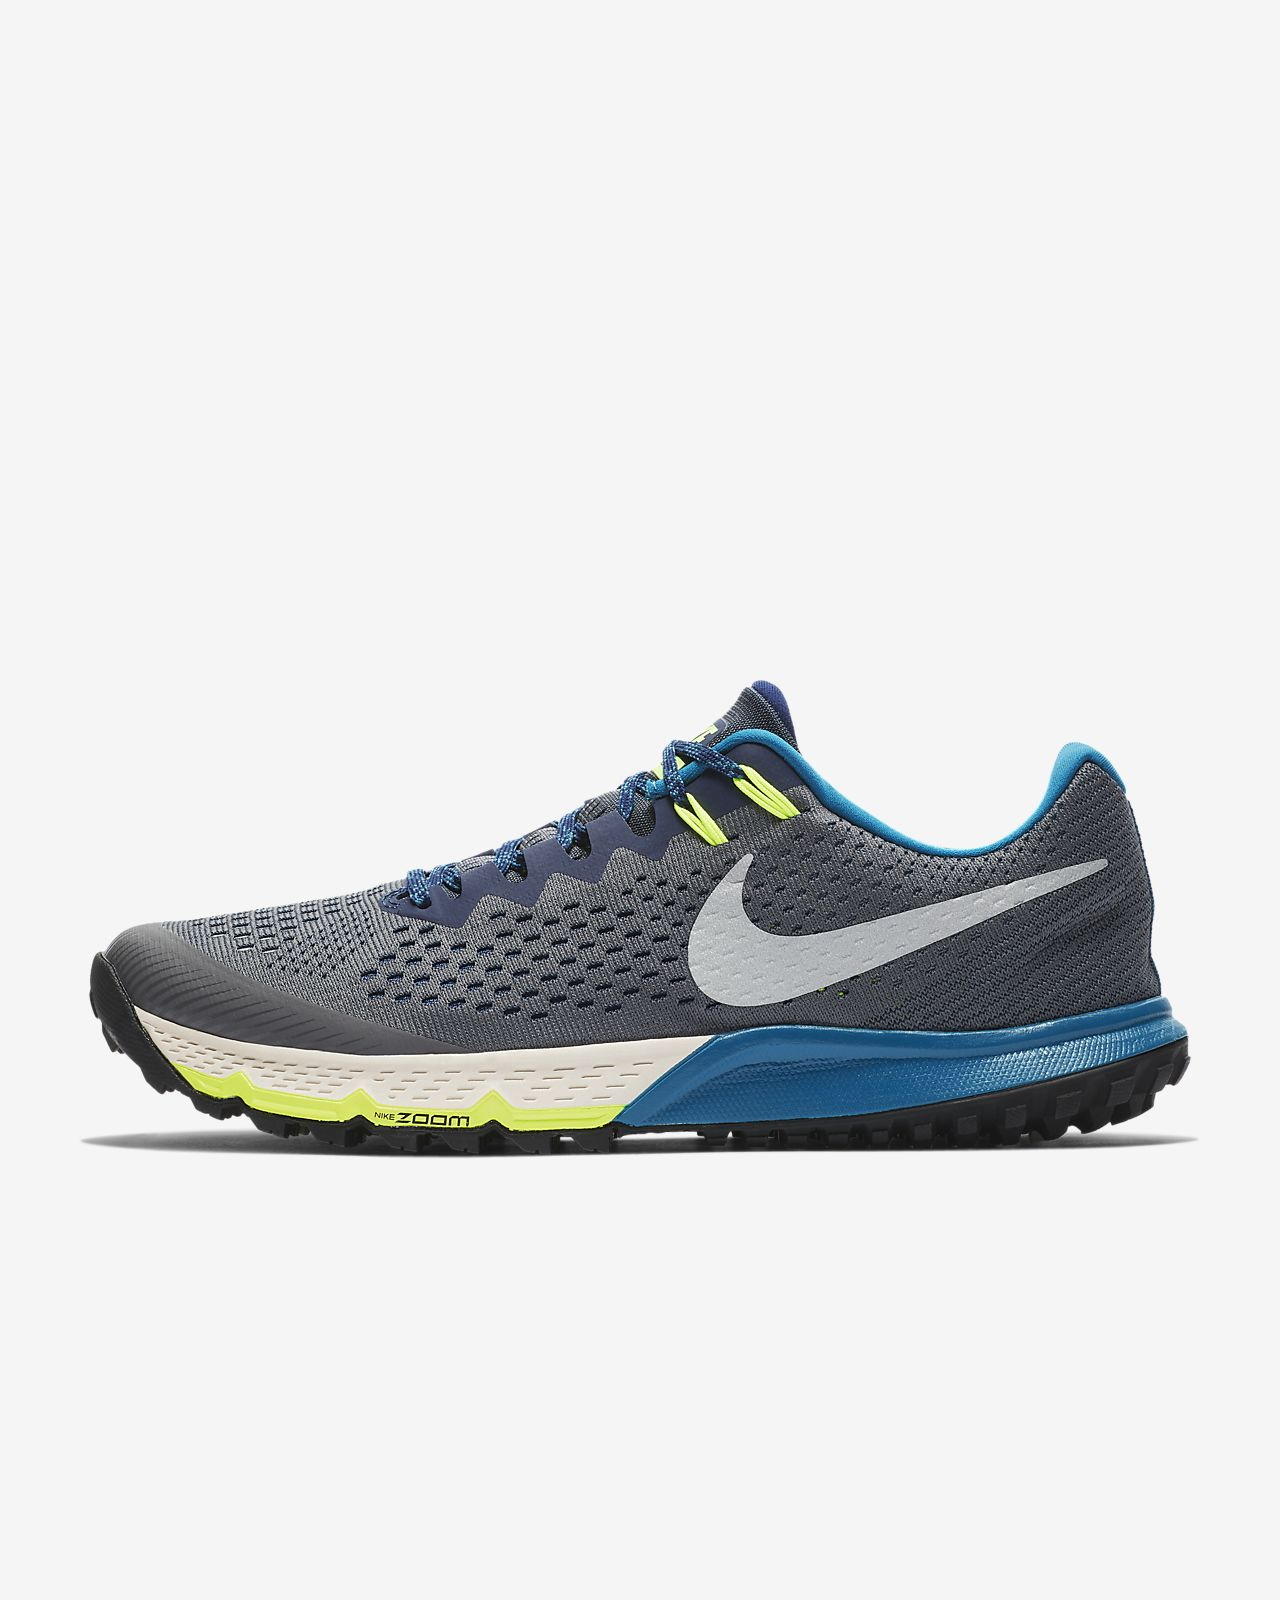 8e67cab4c3087 Chaussure de running Nike Air Zoom Terra Kiger 4 pour Homme. Nike.com FR